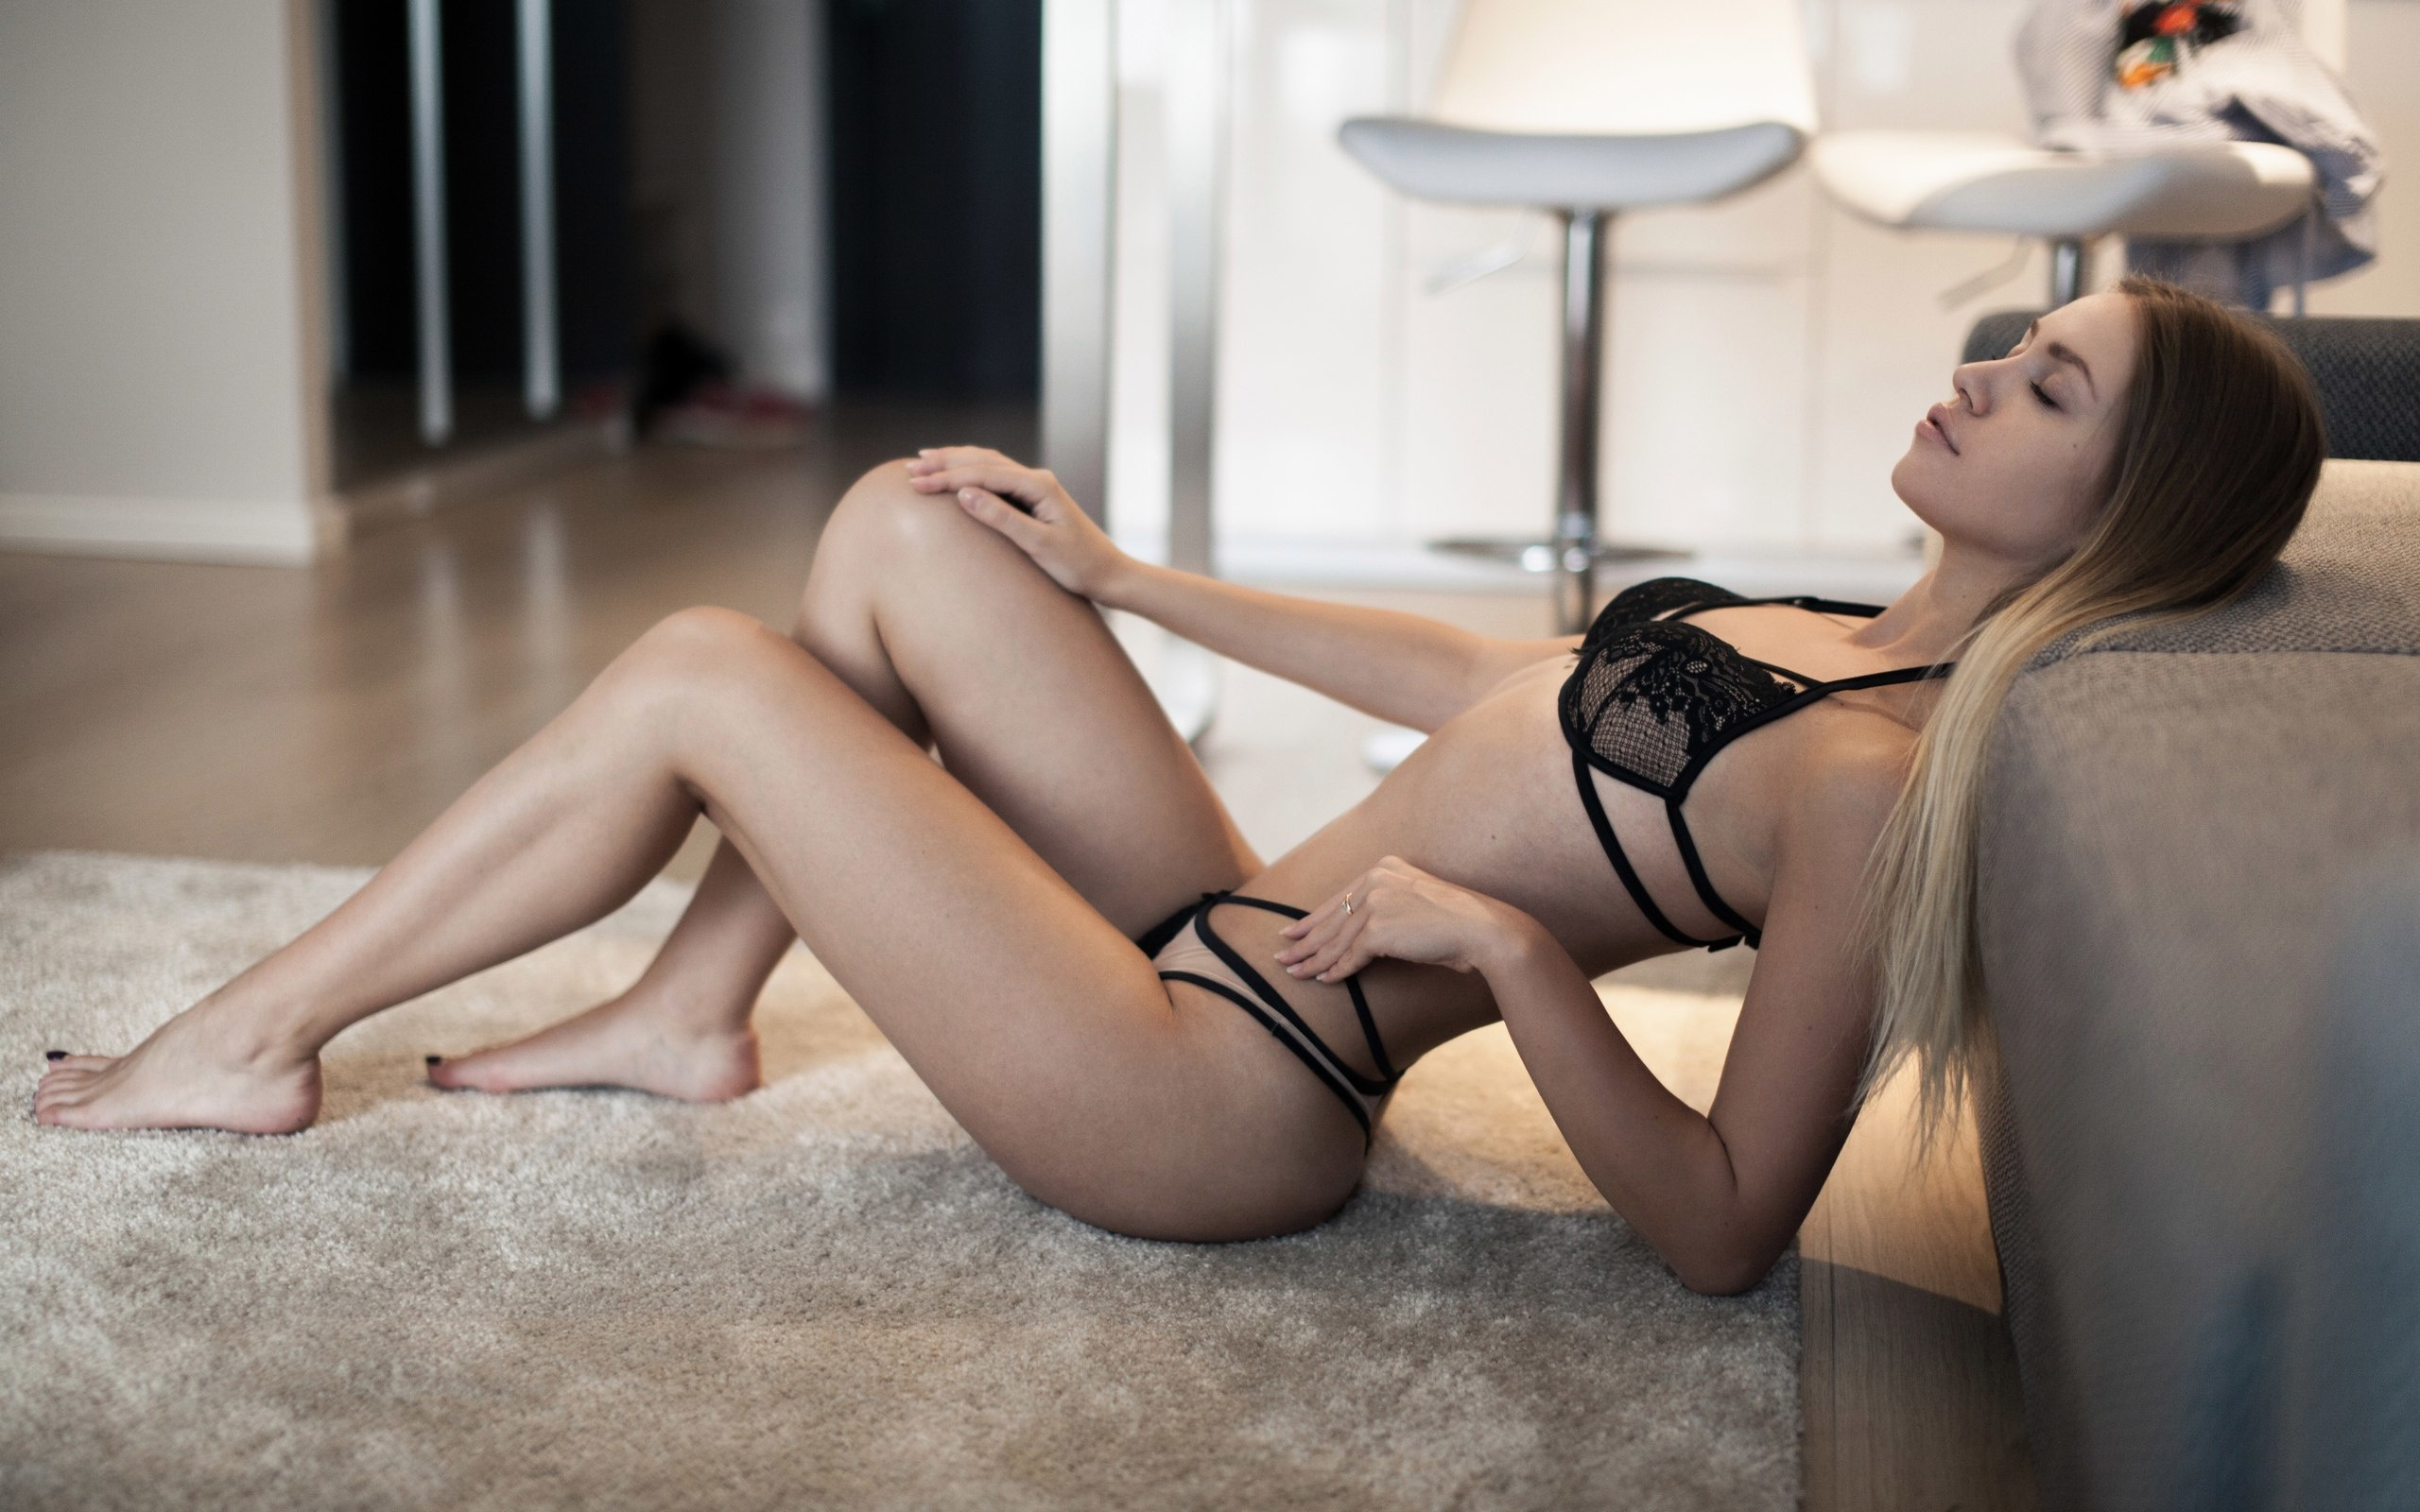 women, blonde, closed eyes, lingerie, brunette, chair, long hair, couch, on the floor, sitting, pink lipstick